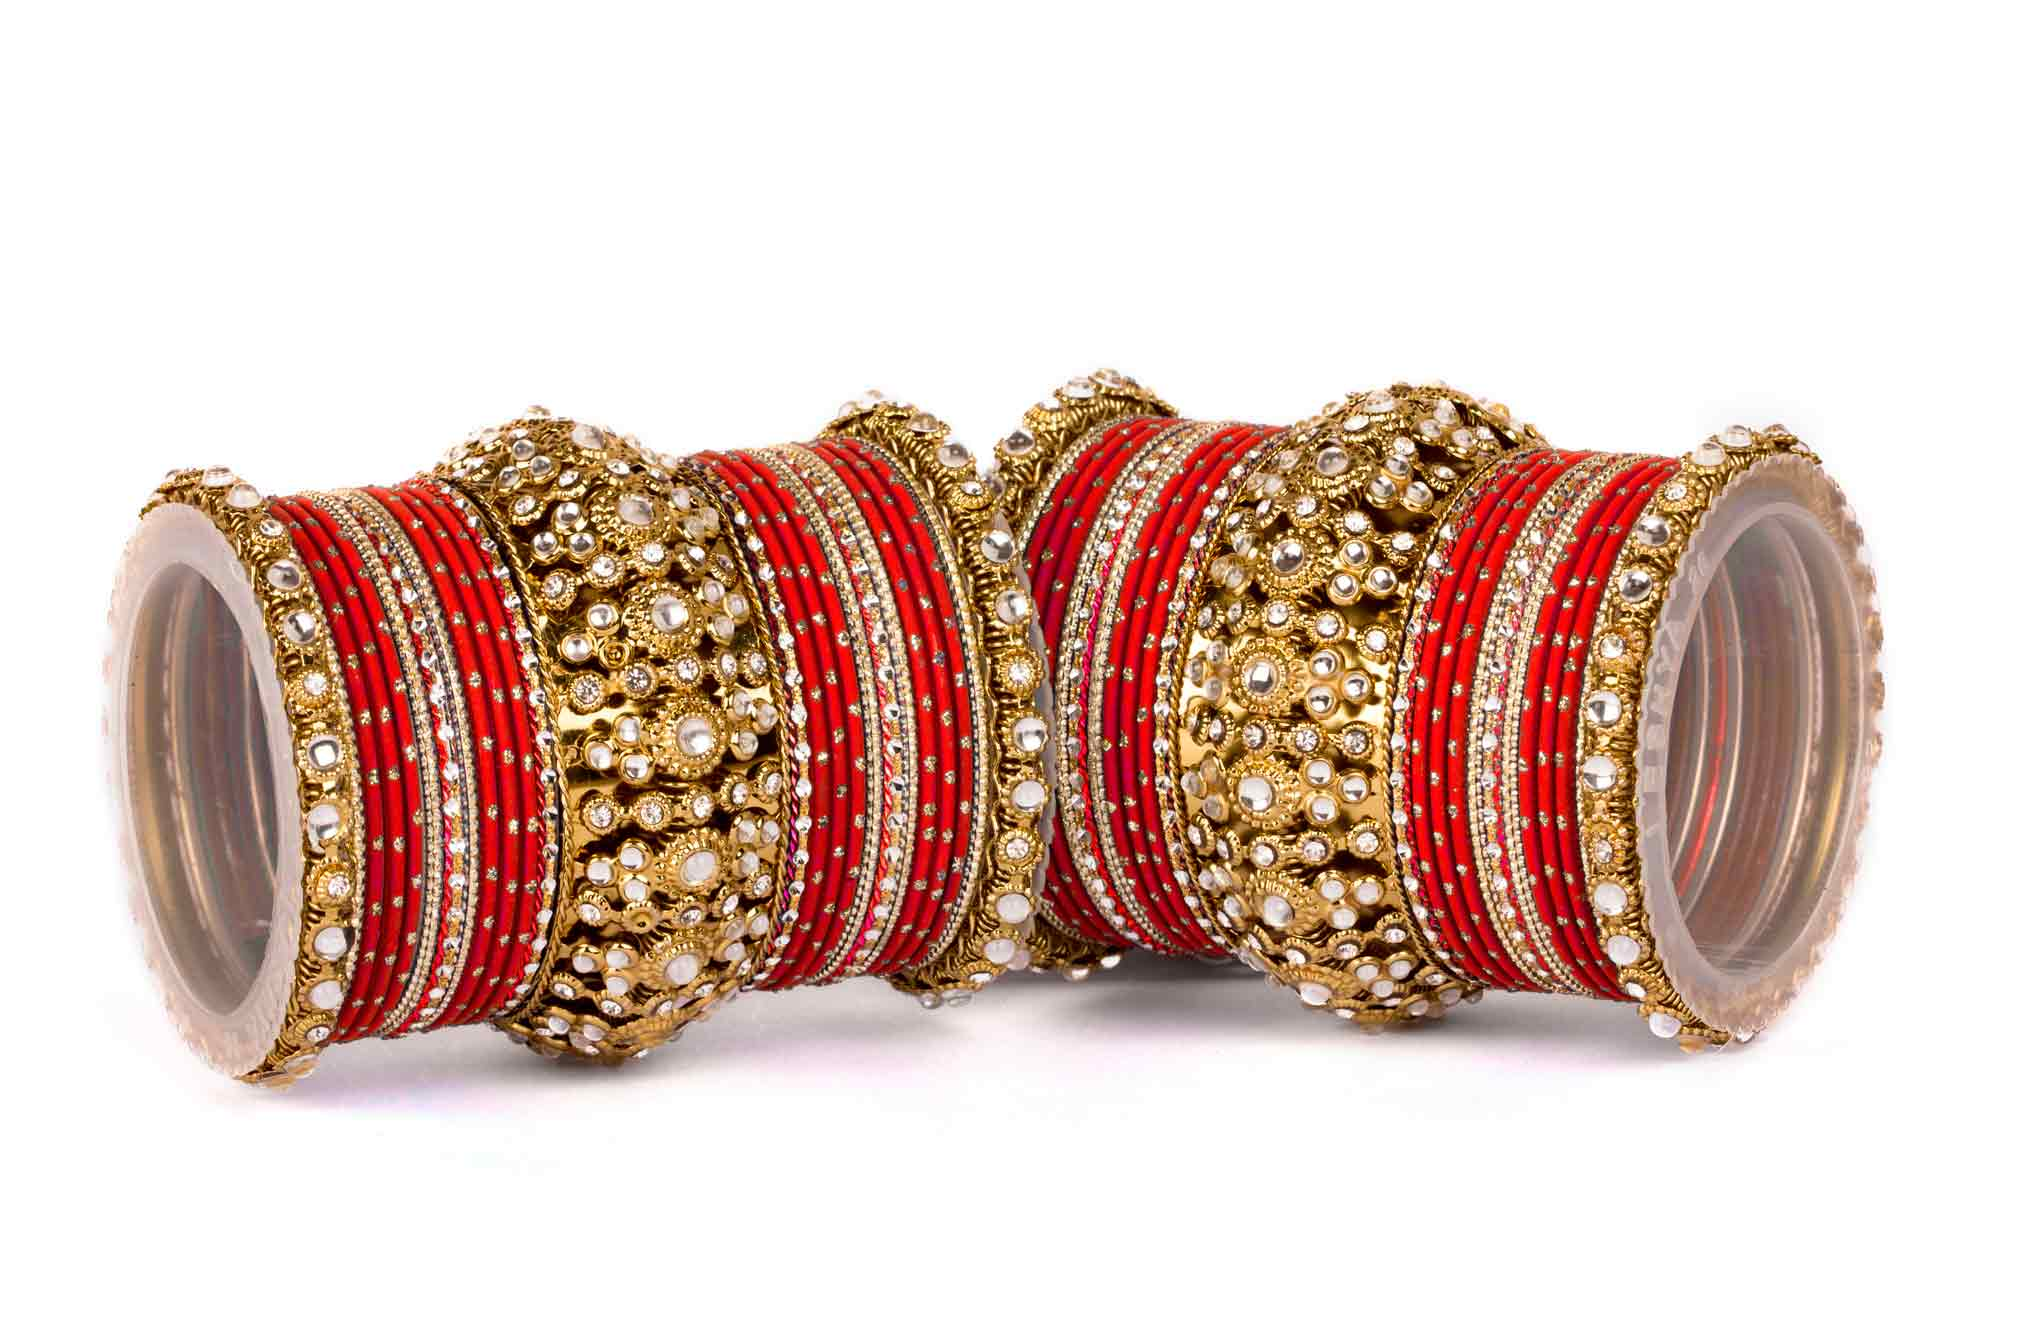 in brass bangles partywear taste golden metal with elegant sequence sylque blue rich nagh and designer ethnic moti supreno red